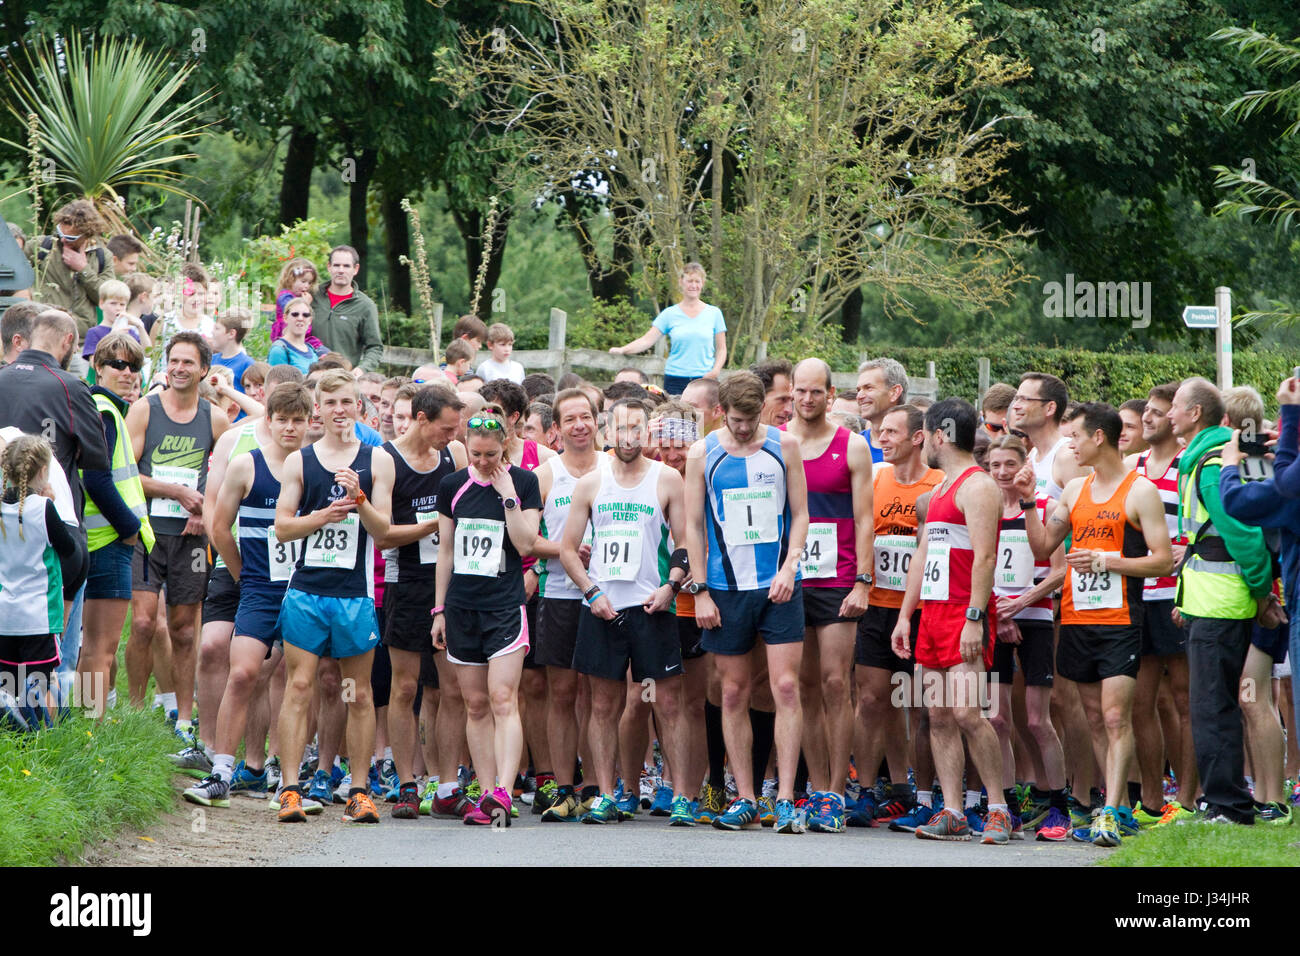 Runners wait for the start of a road race - Stock Image